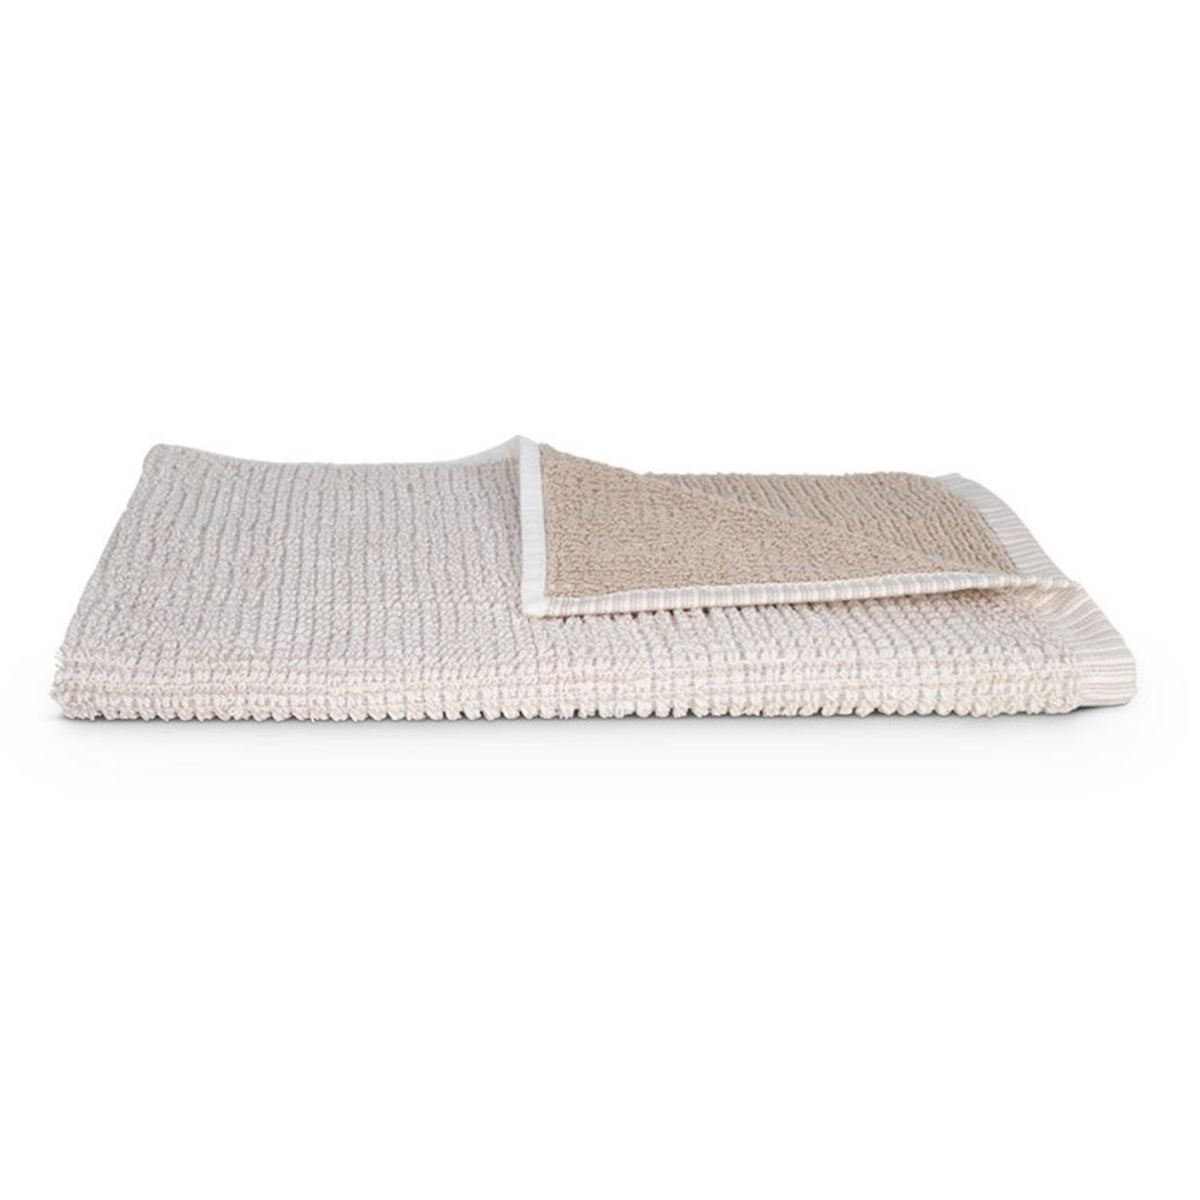 Organic Cotton Duo Weave Hand Towel - White